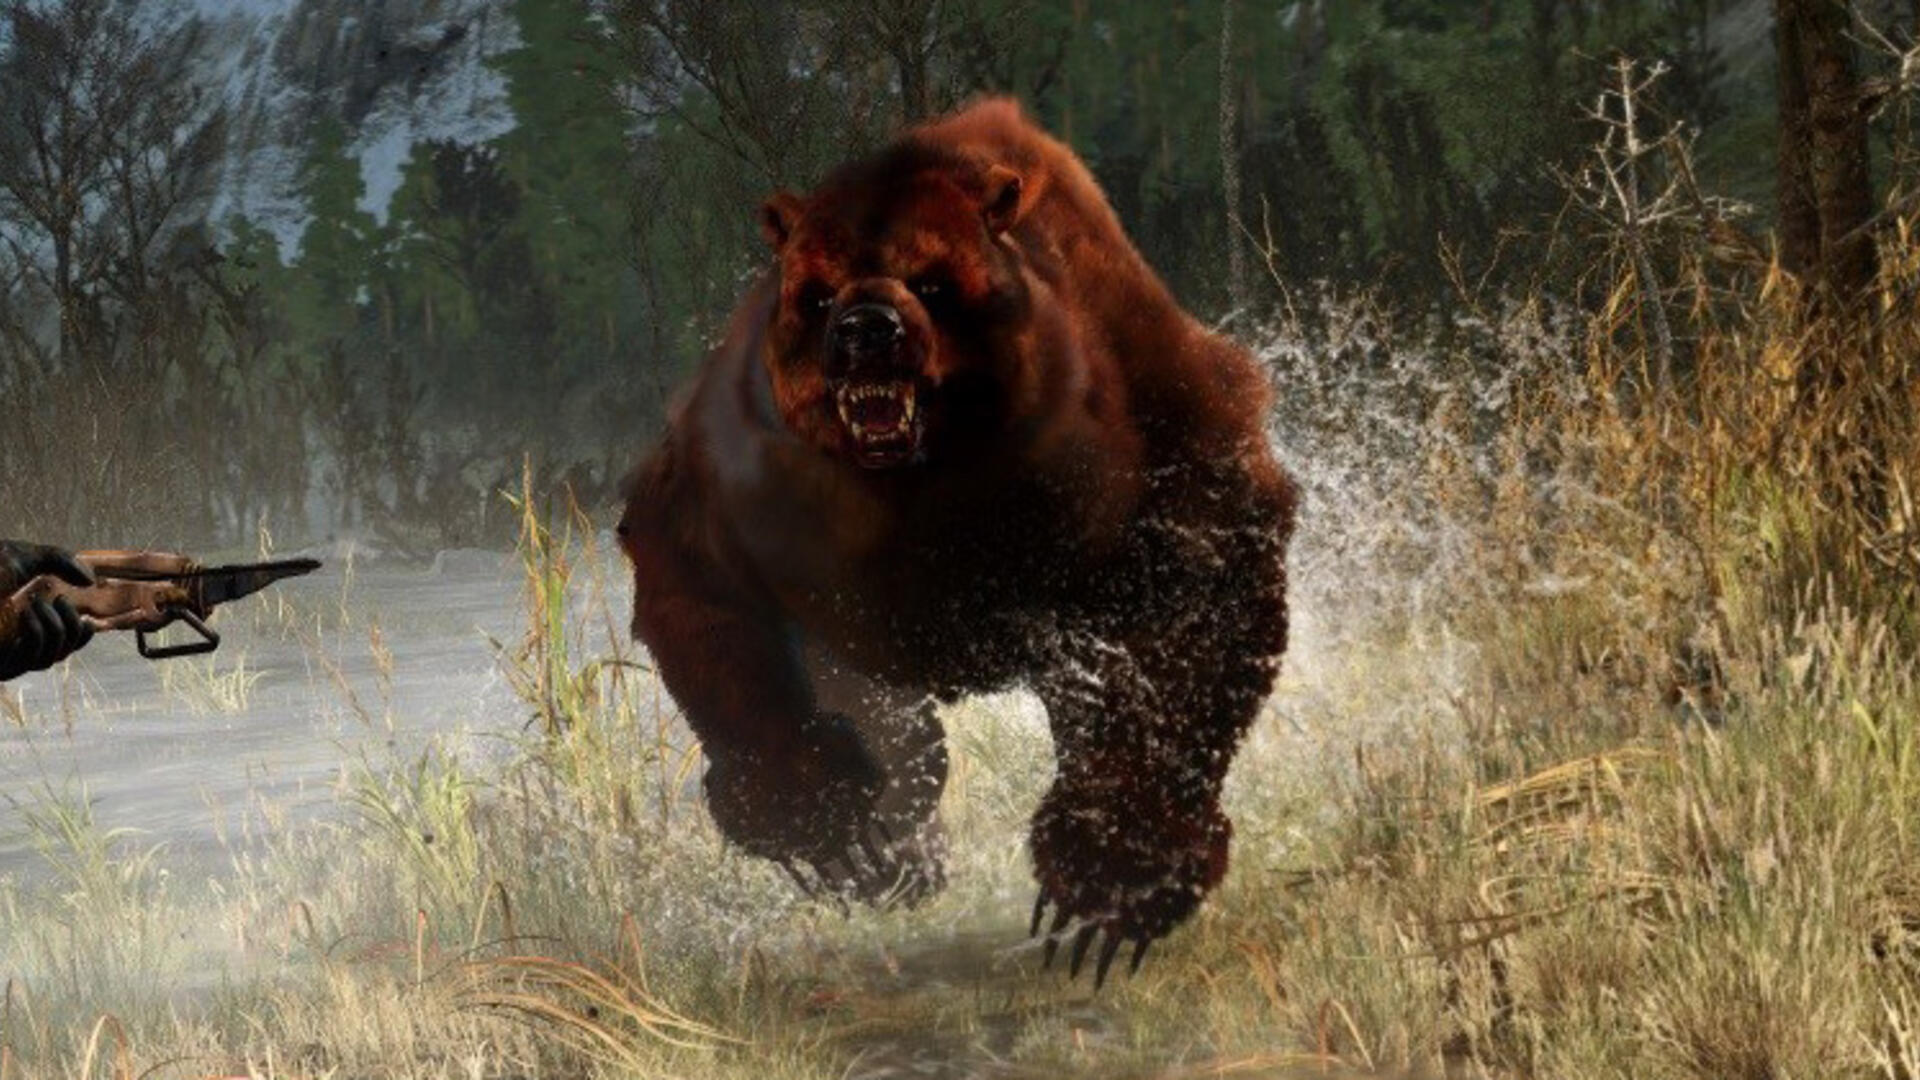 The Witcher 3 Bear School Armor - Where to Find the Ursine School Gear